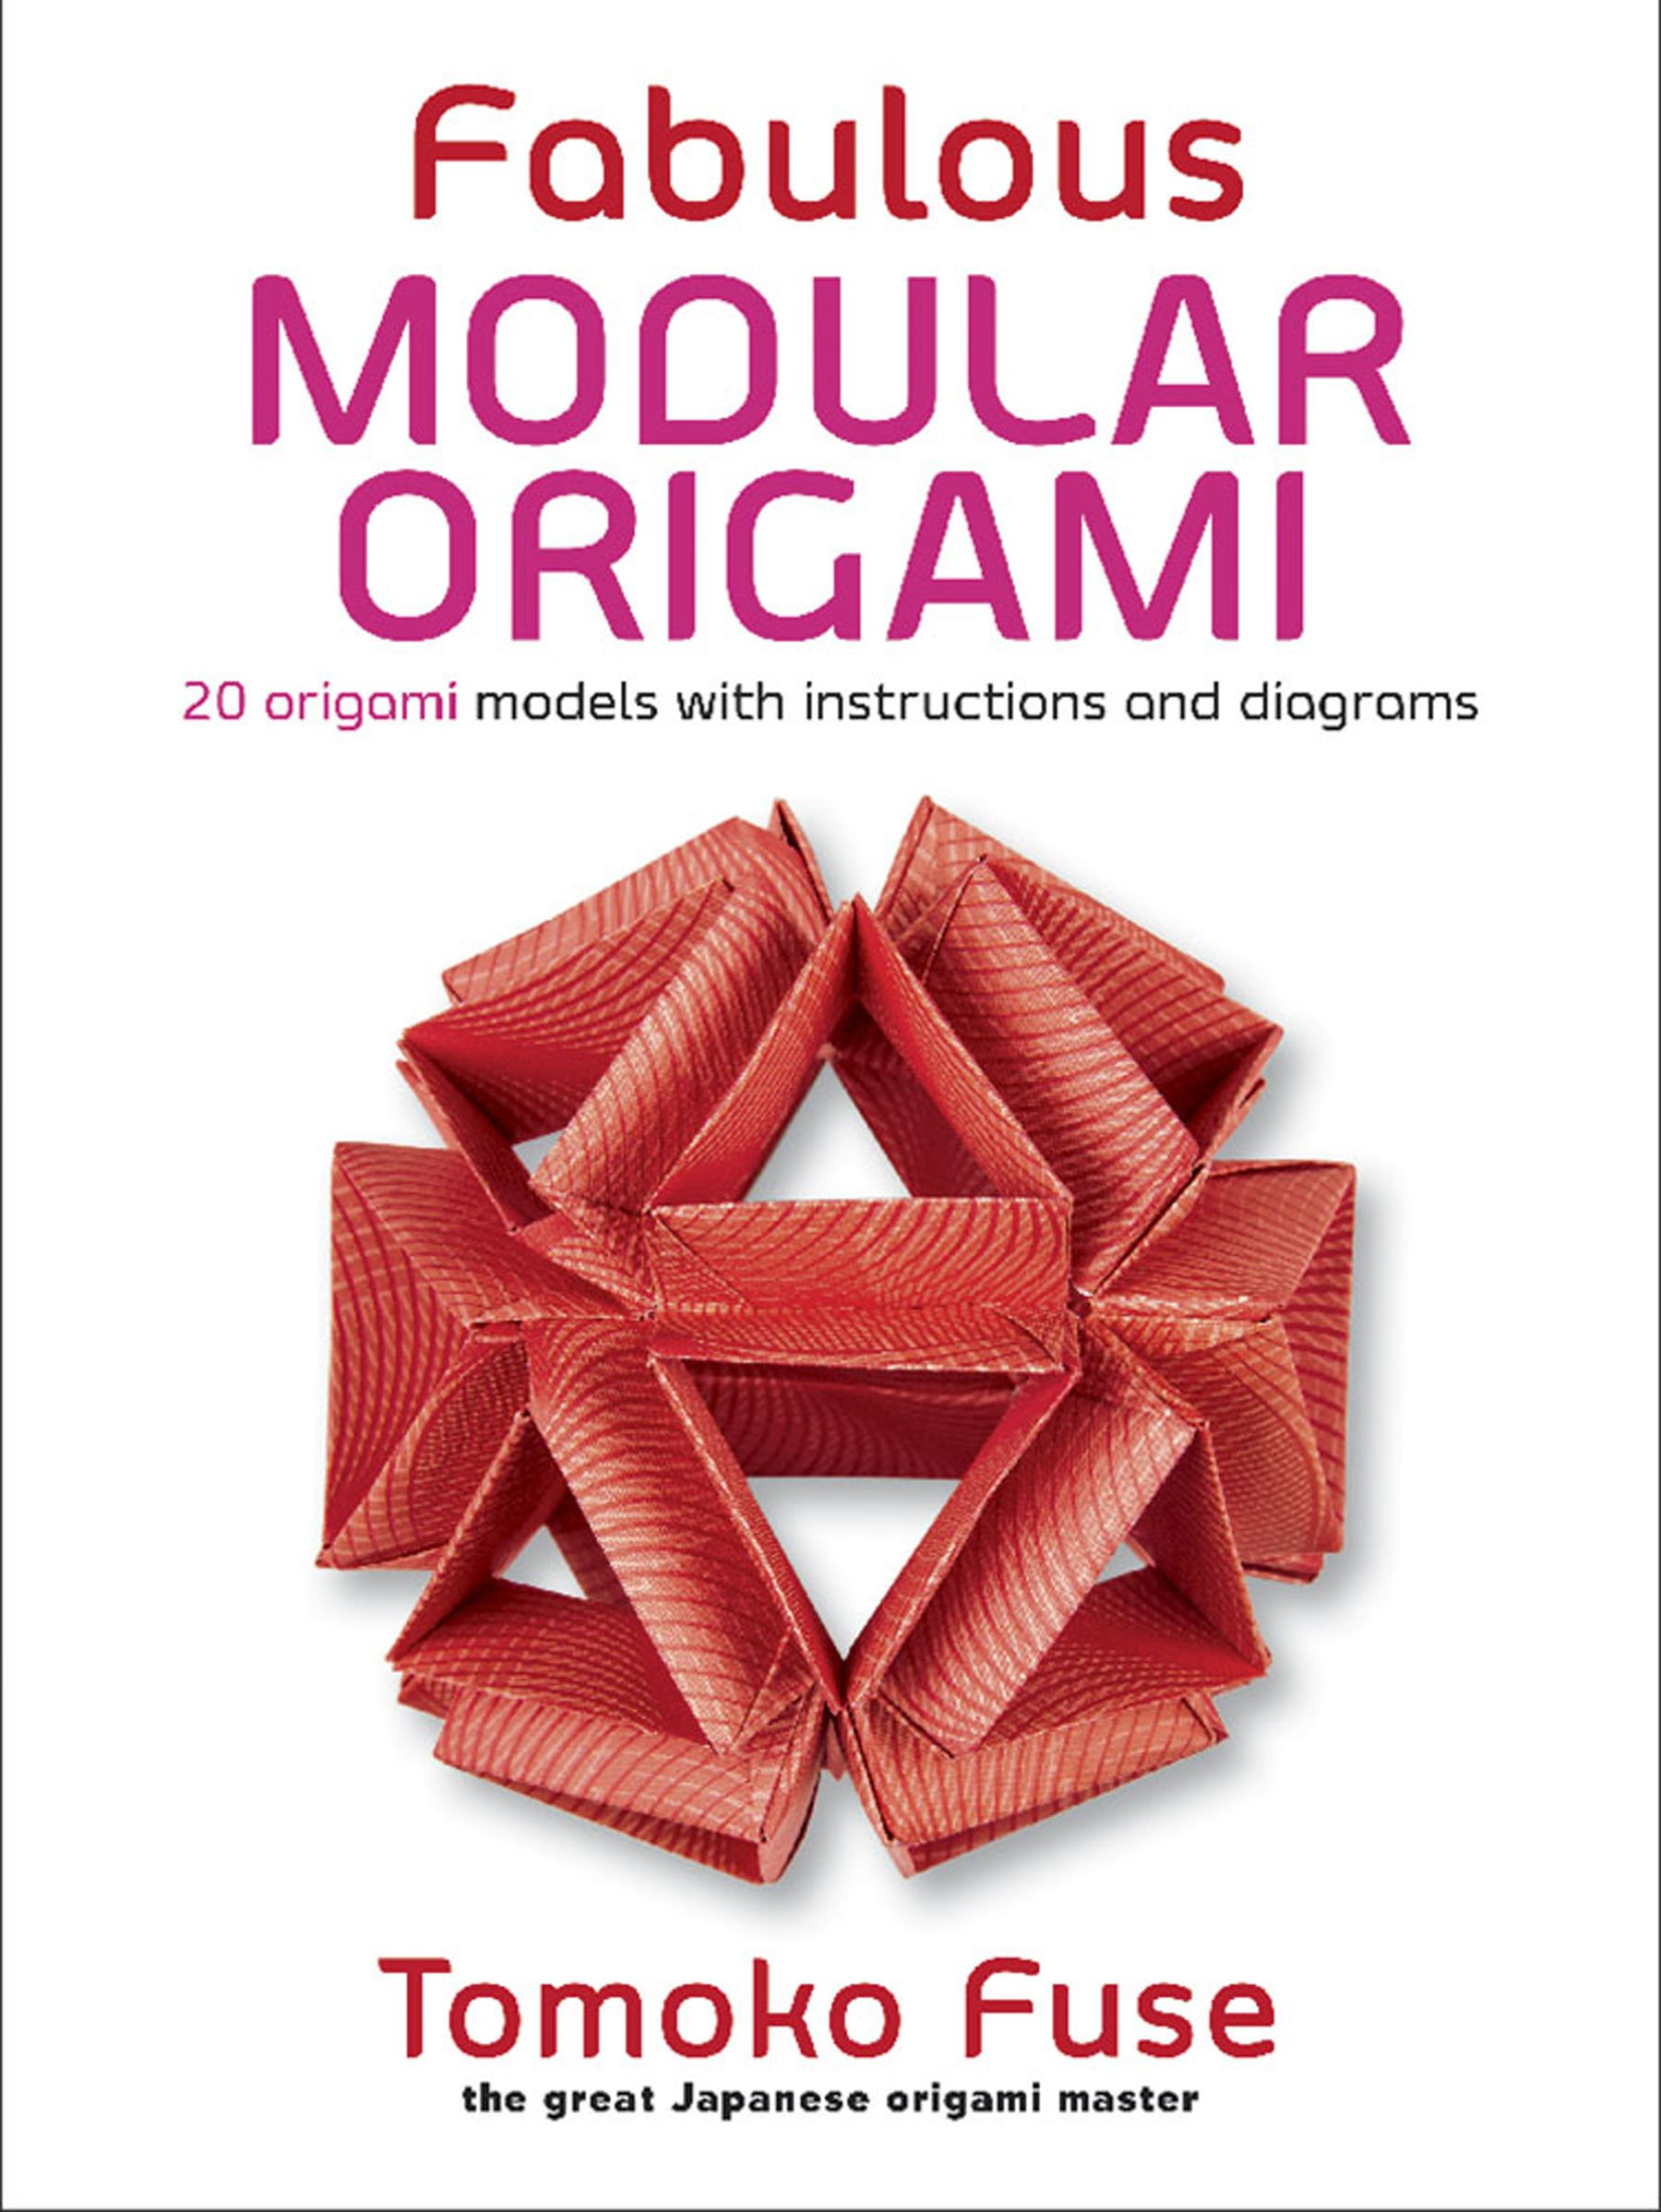 Fabulous Modular Origami 20 Origami Models With Instructions And